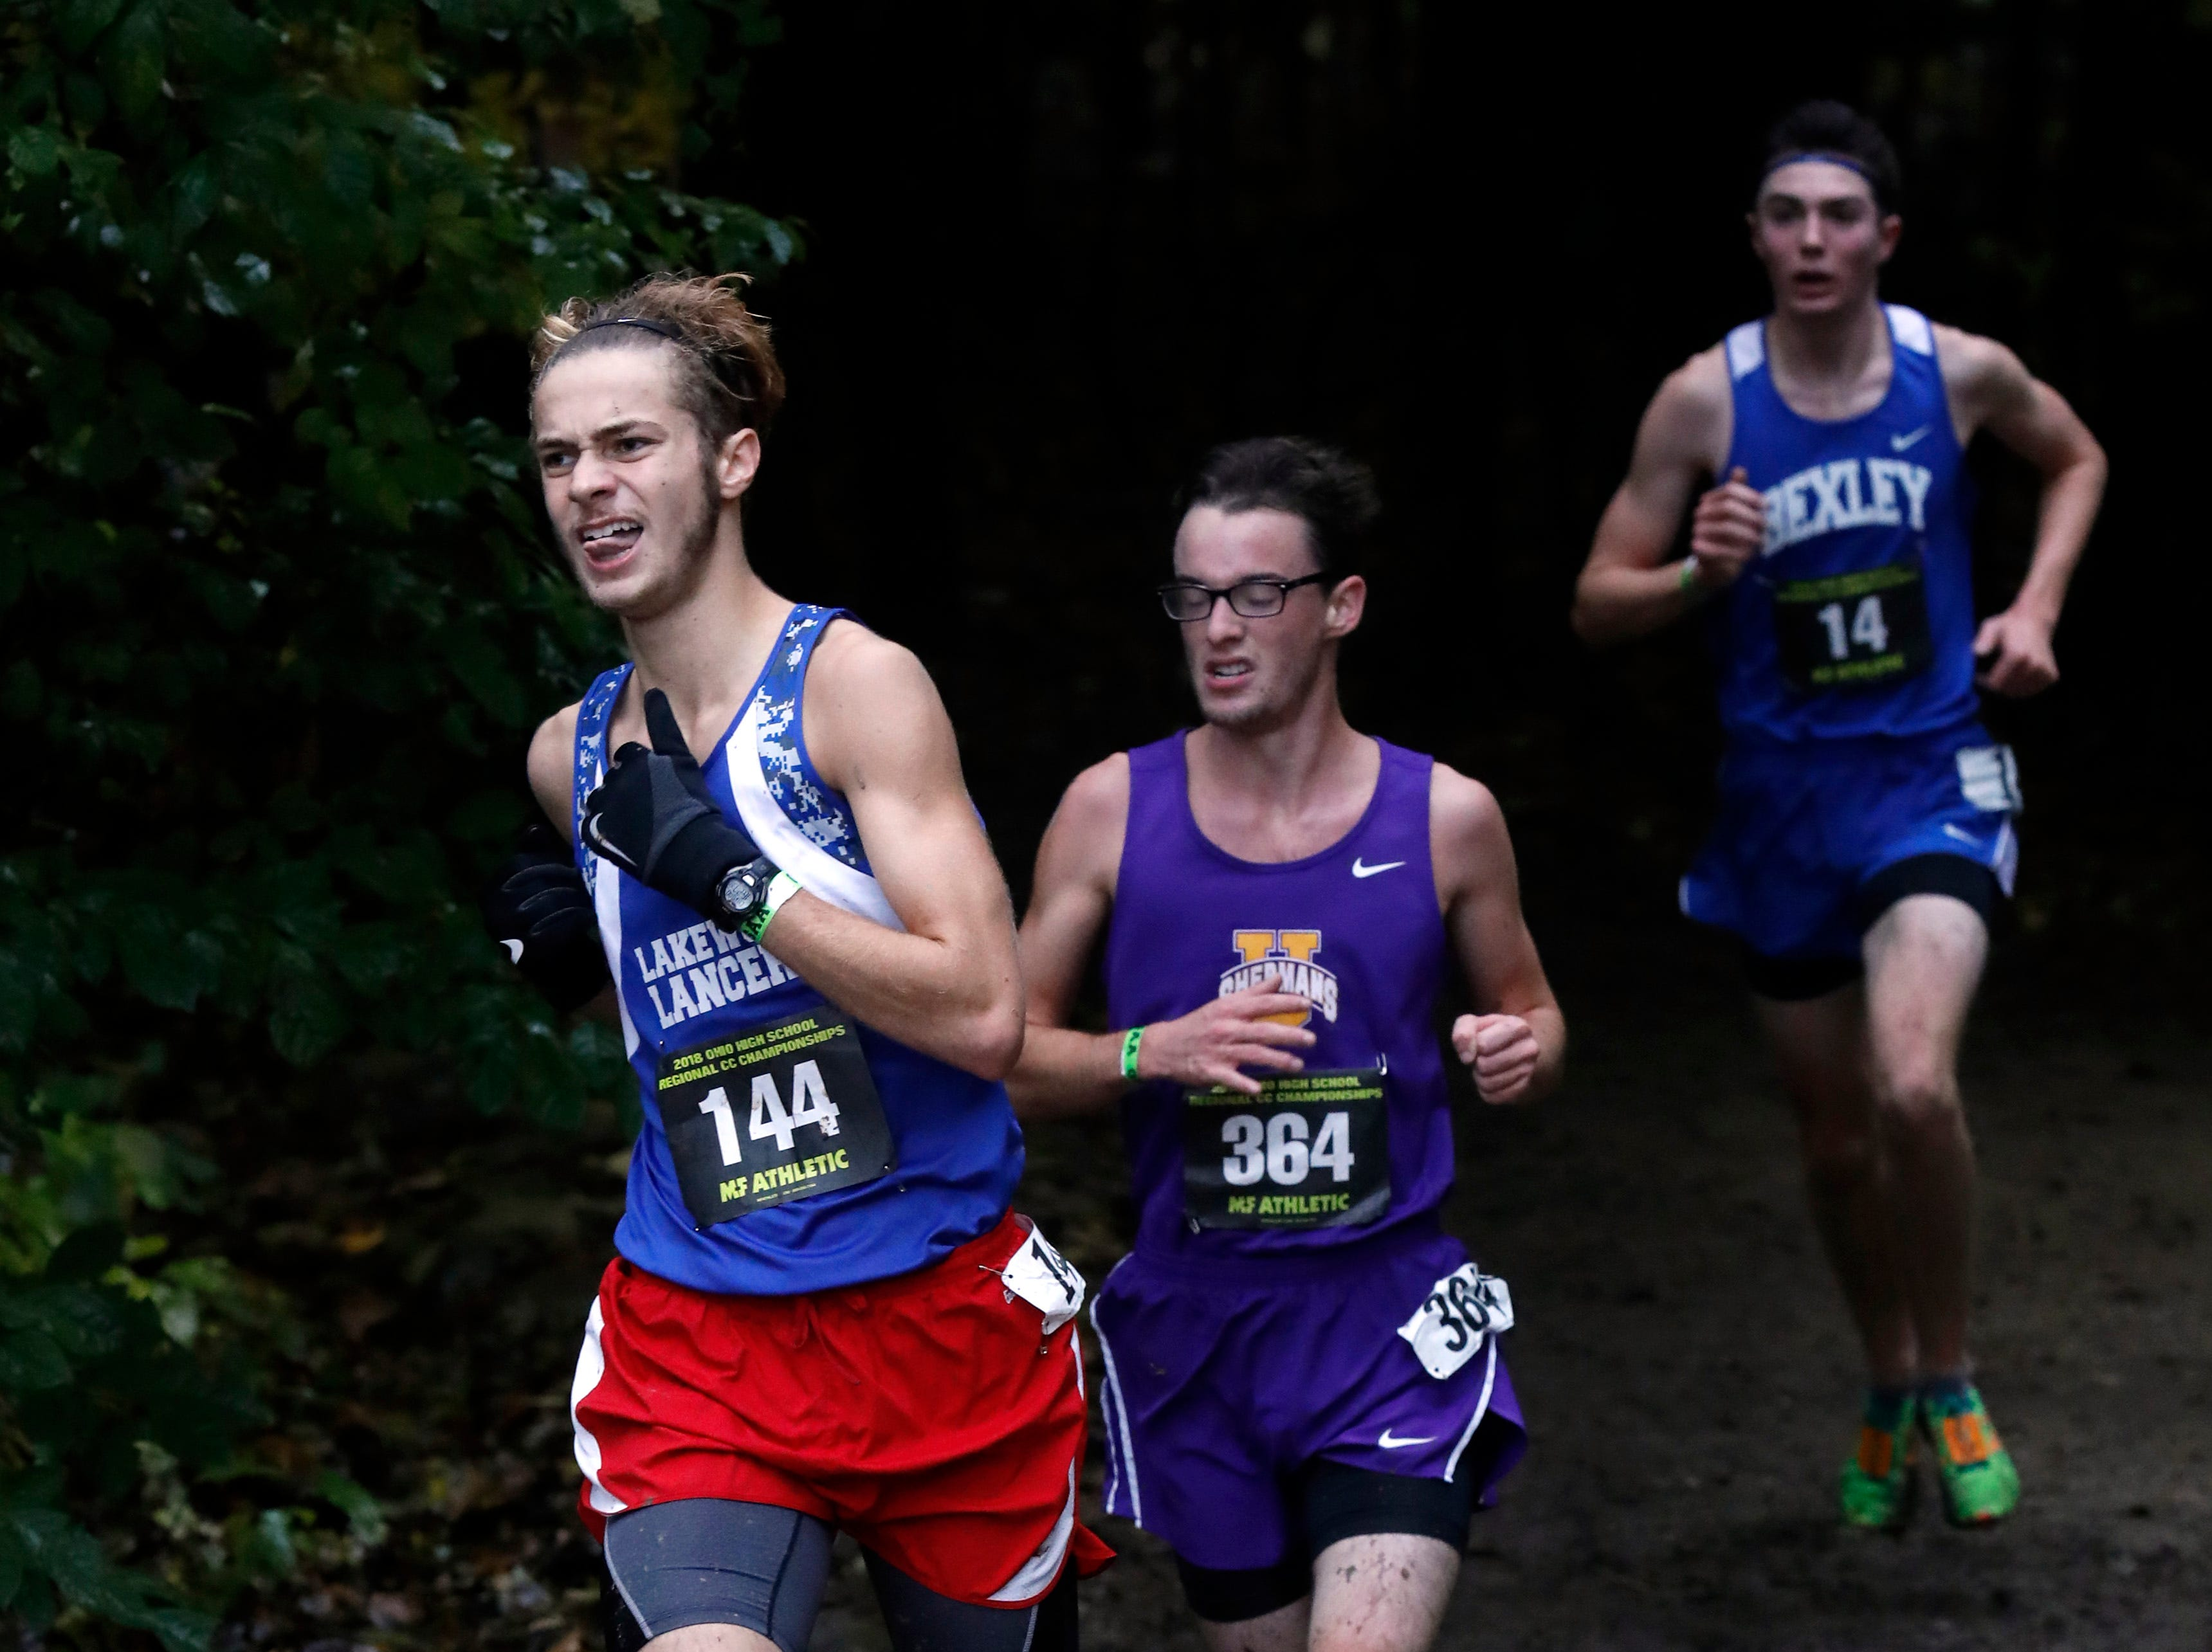 Lakewood's Anthony Toskin runs in the Regional Cross Country meet Saturday, Oct. 27, 2018, at Pickerington North High School in Pickerington.